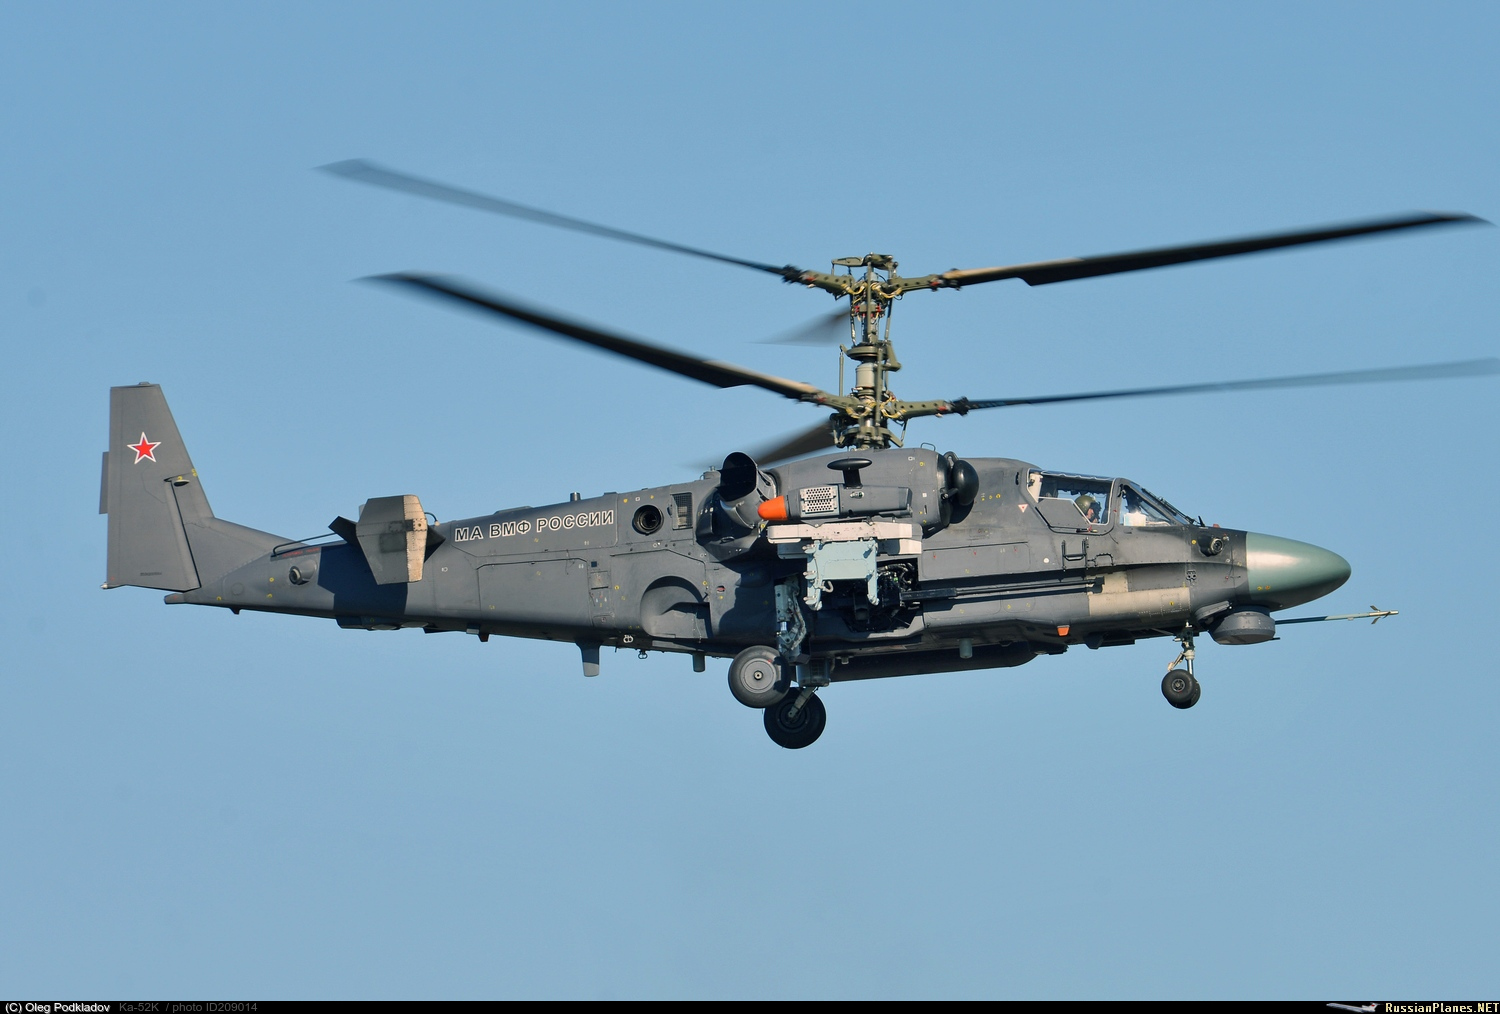 http://russianplanes.net/images/to210000/209014.jpg